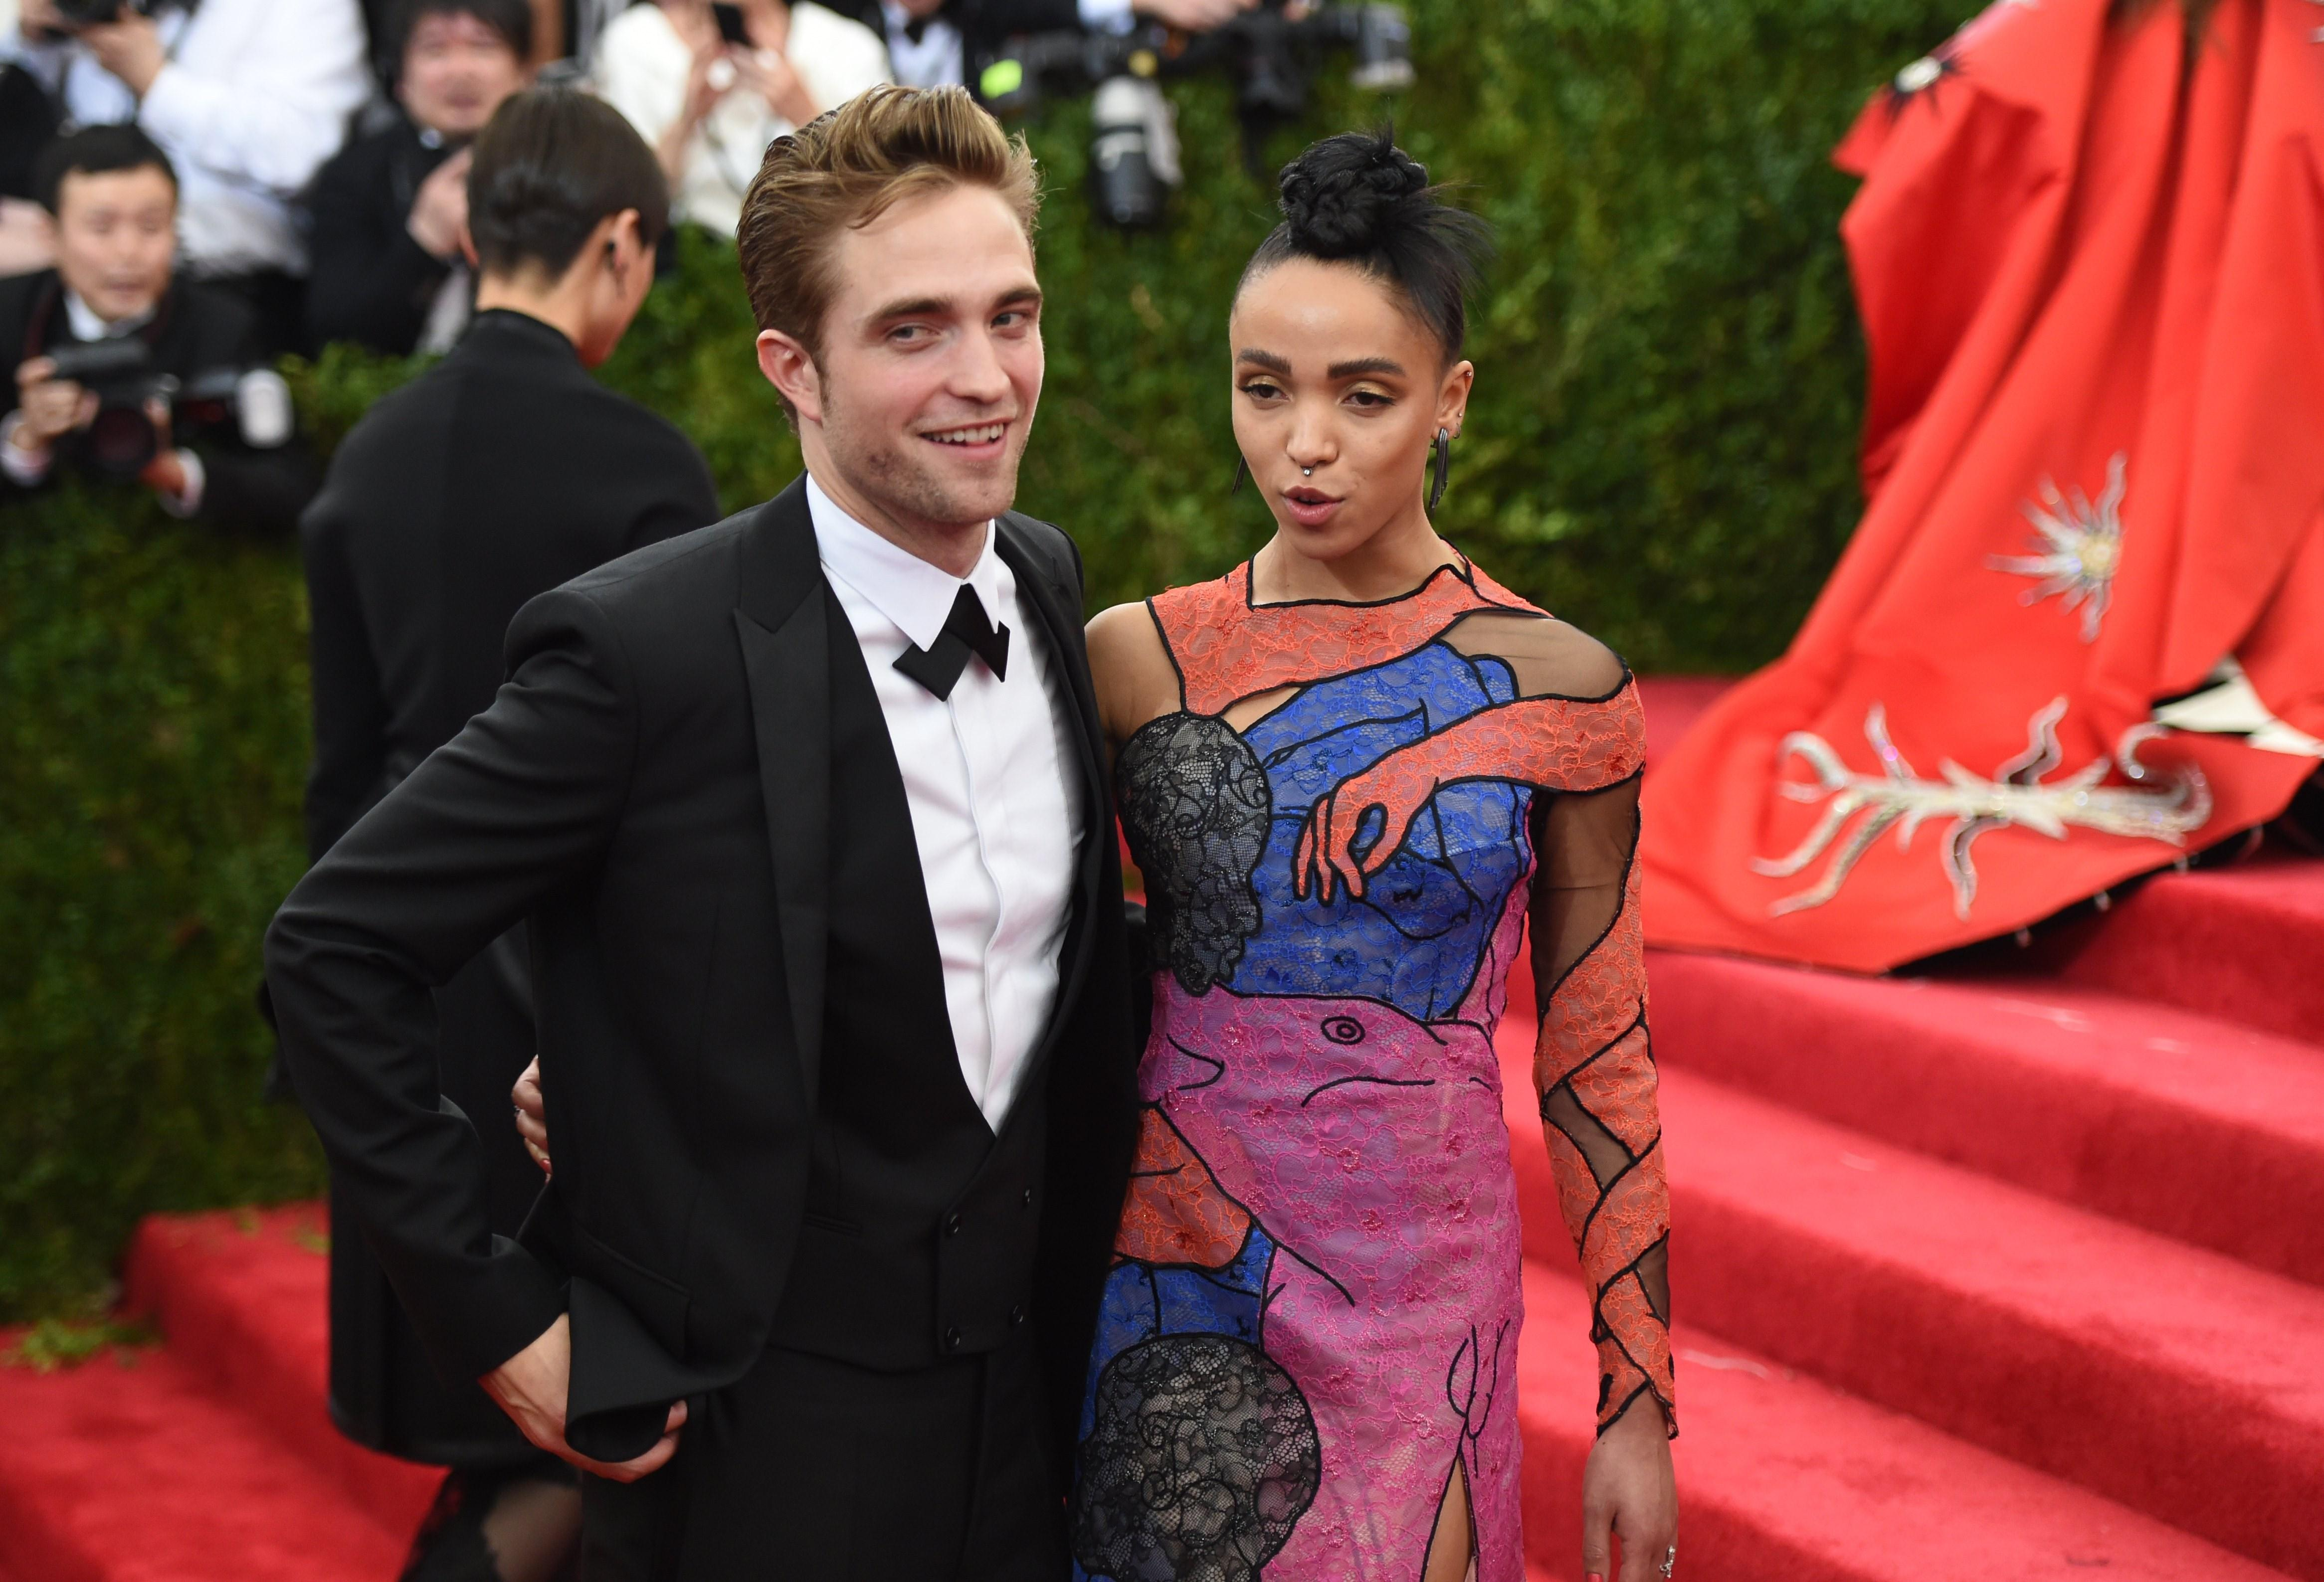 Robert Pattinson FKS Twigs